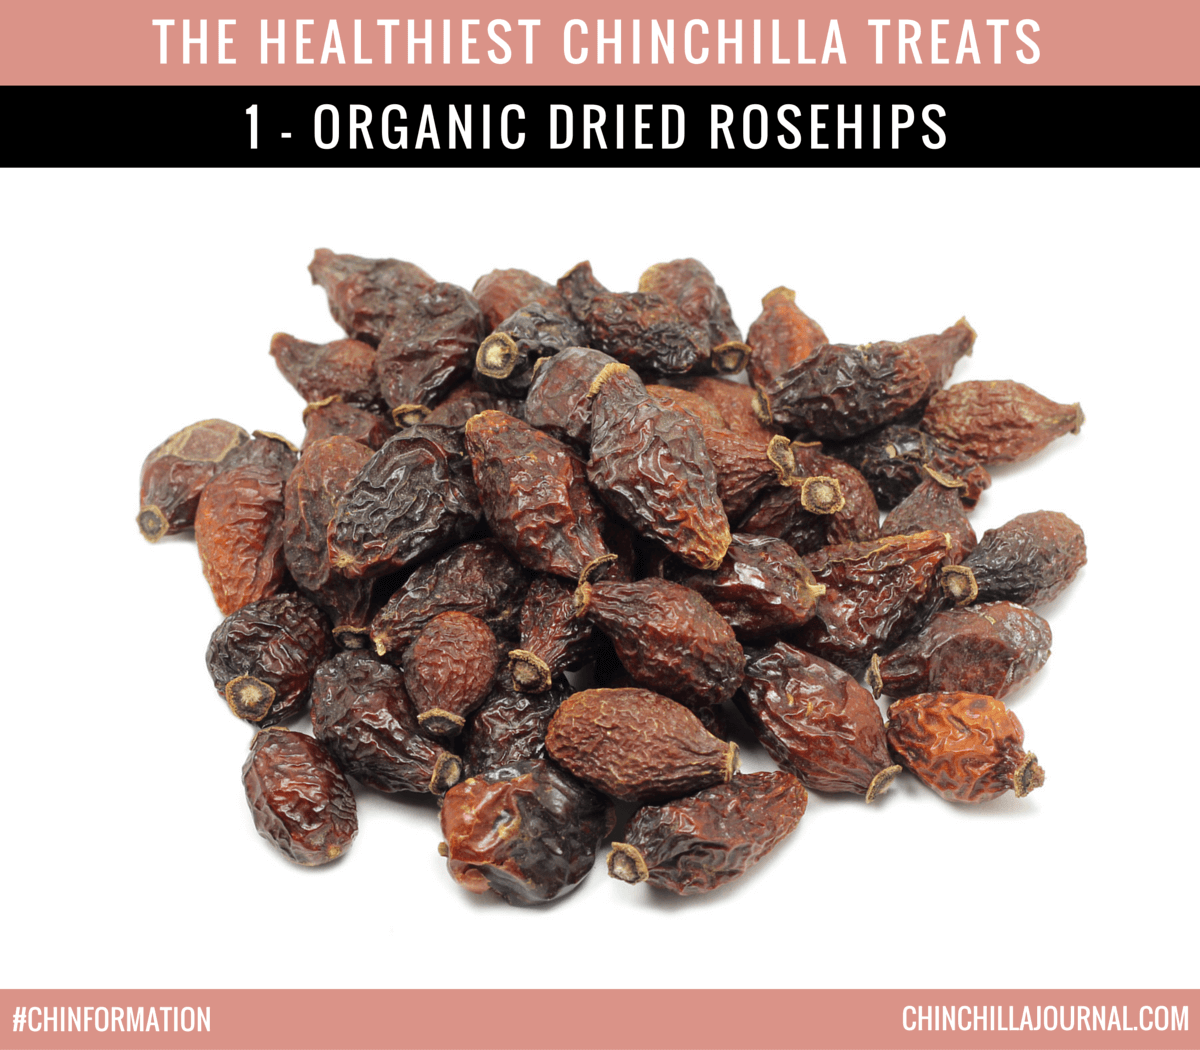 The Healthiest Chinchilla Treats - 1 - Organic Dried Rosehips